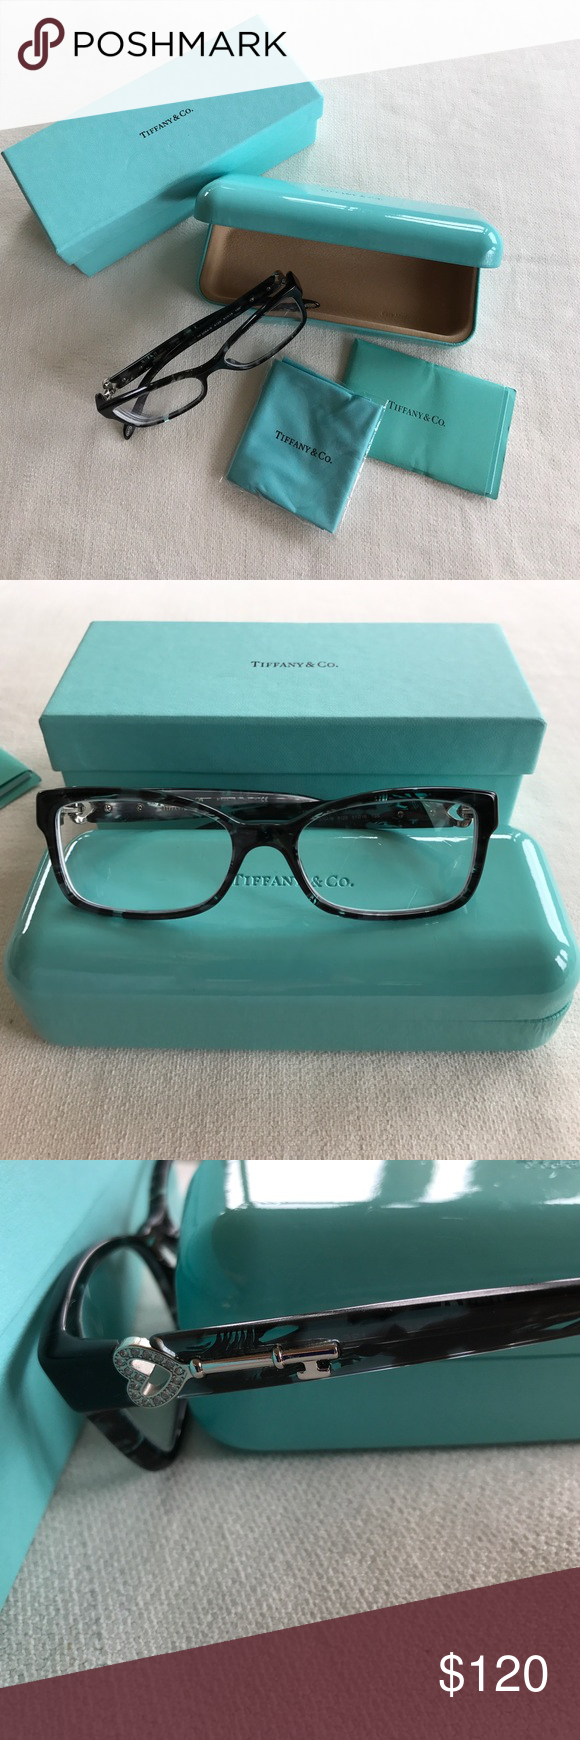 73d4be0235a2 Authentic Tiffany frames with case